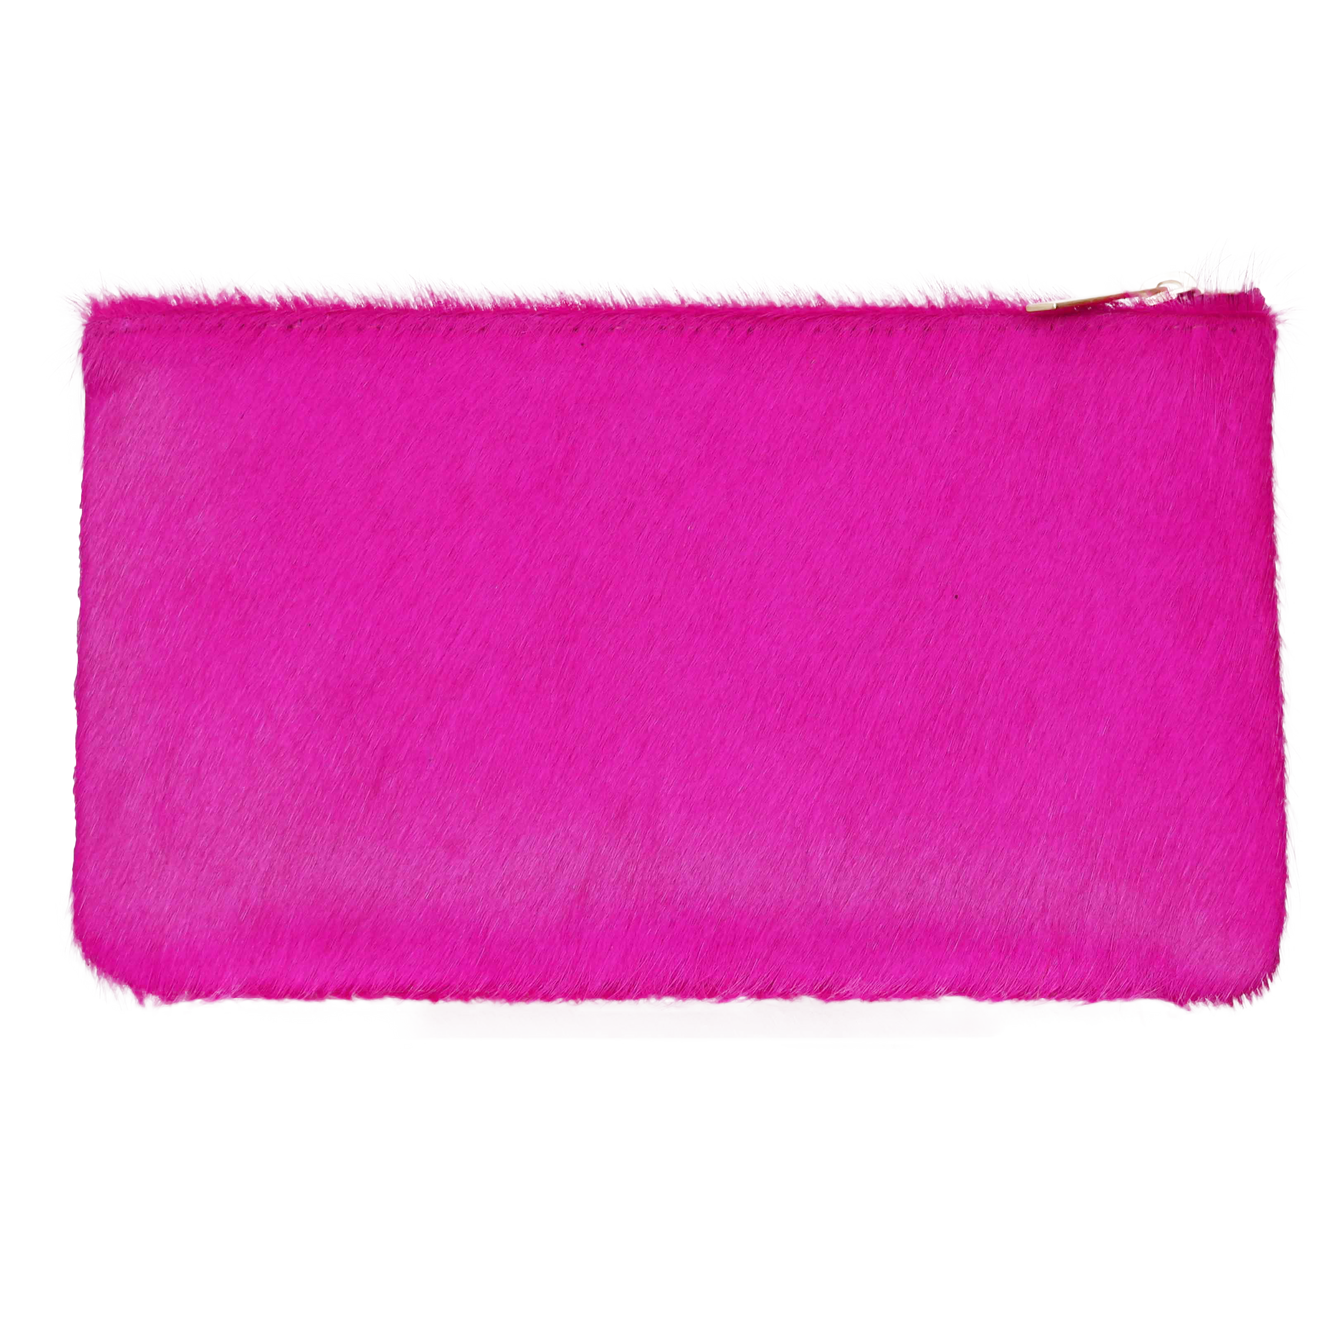 Genuine Calf Hair Zip Pouch Clutch in Fuchsia-Women - Accessories - Clutches-ALLISON MITCHELL-Large-Peccadilly